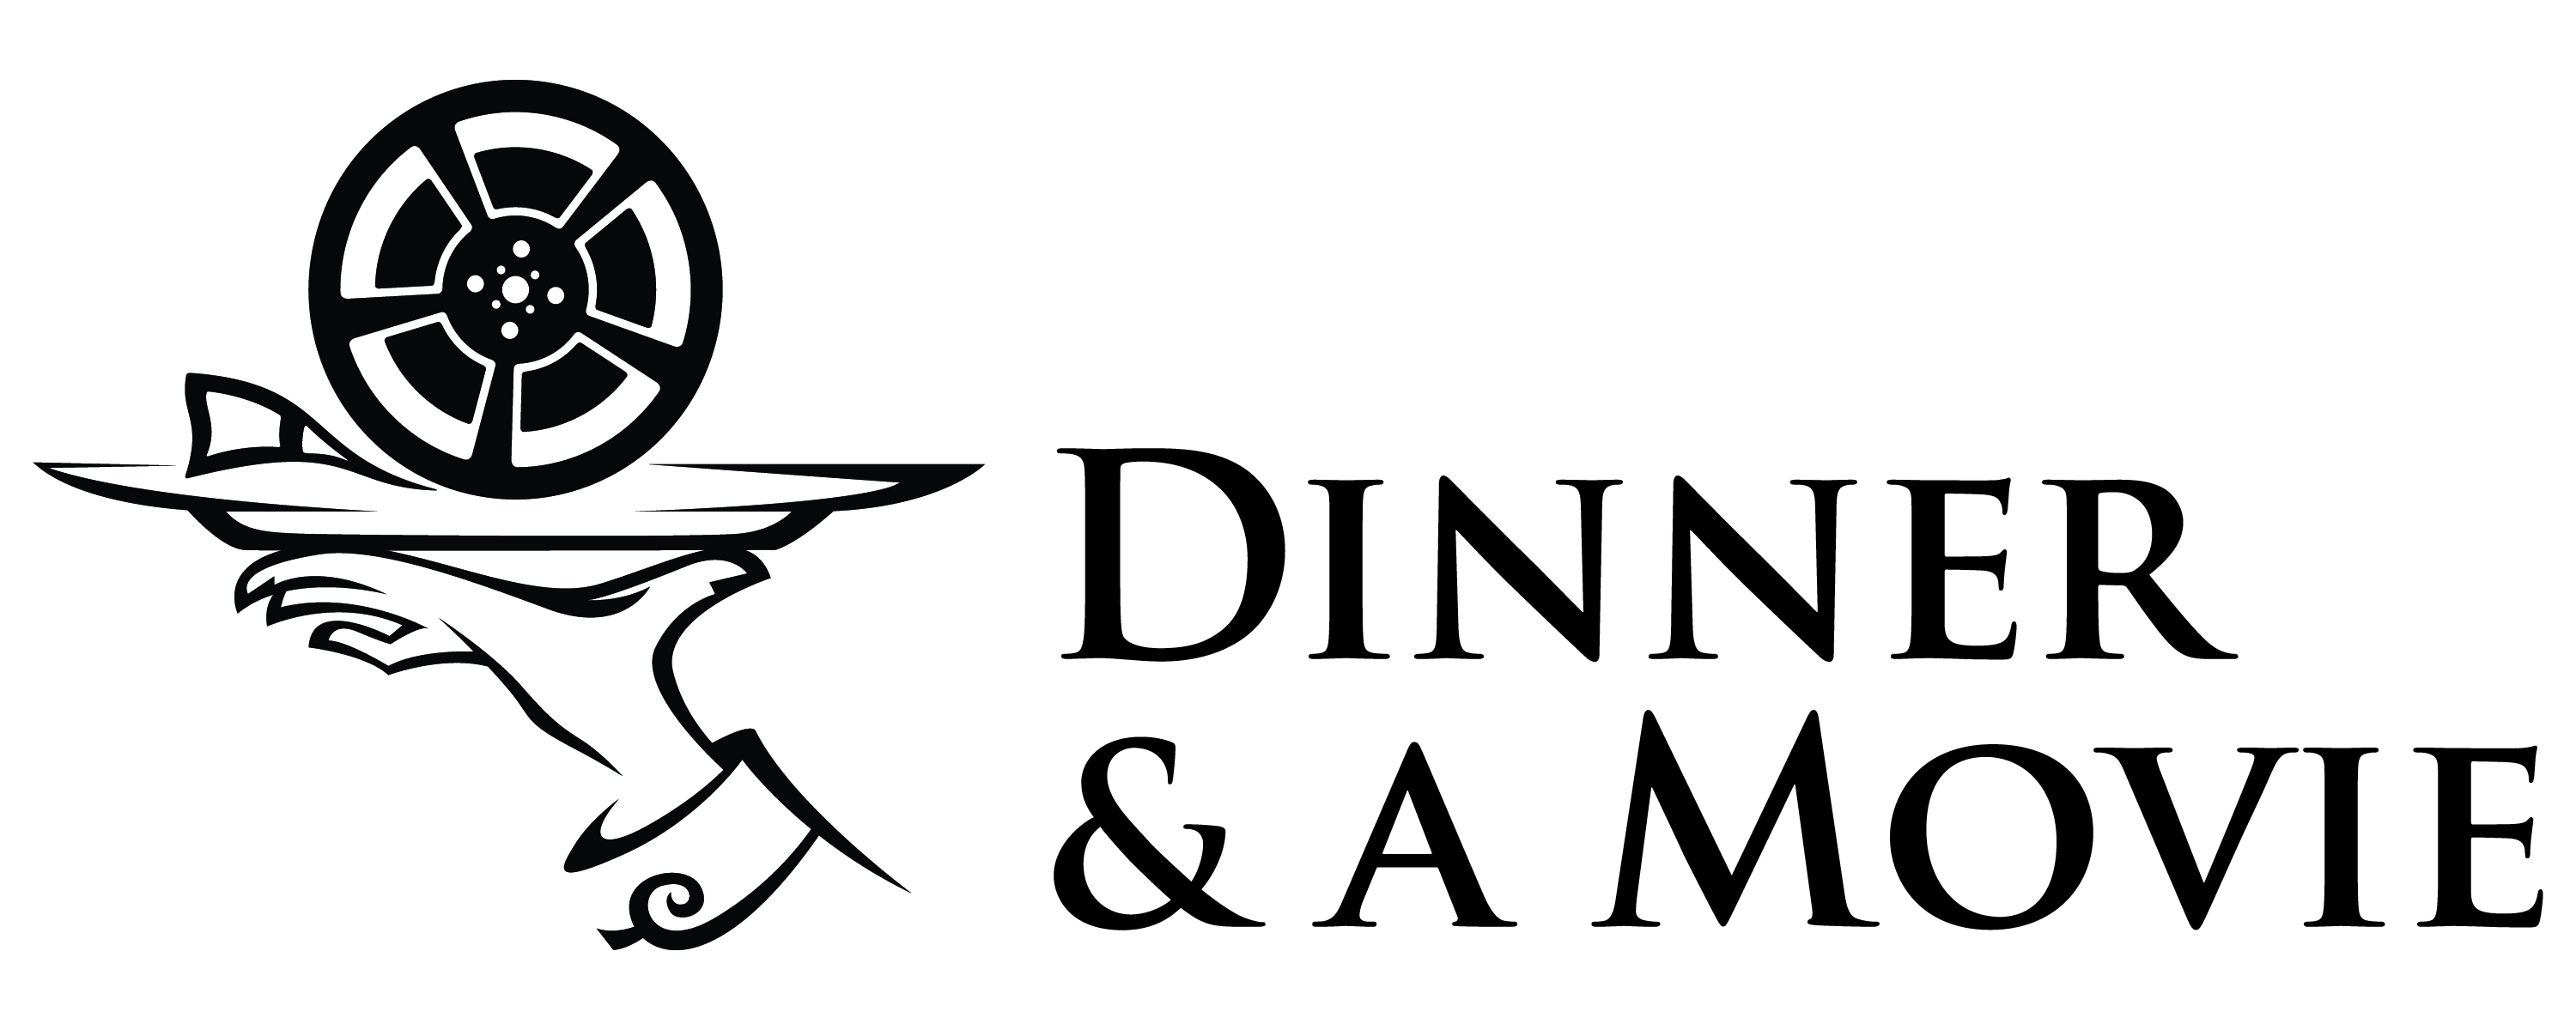 3000x1200 Dinner And A Movie Clipart